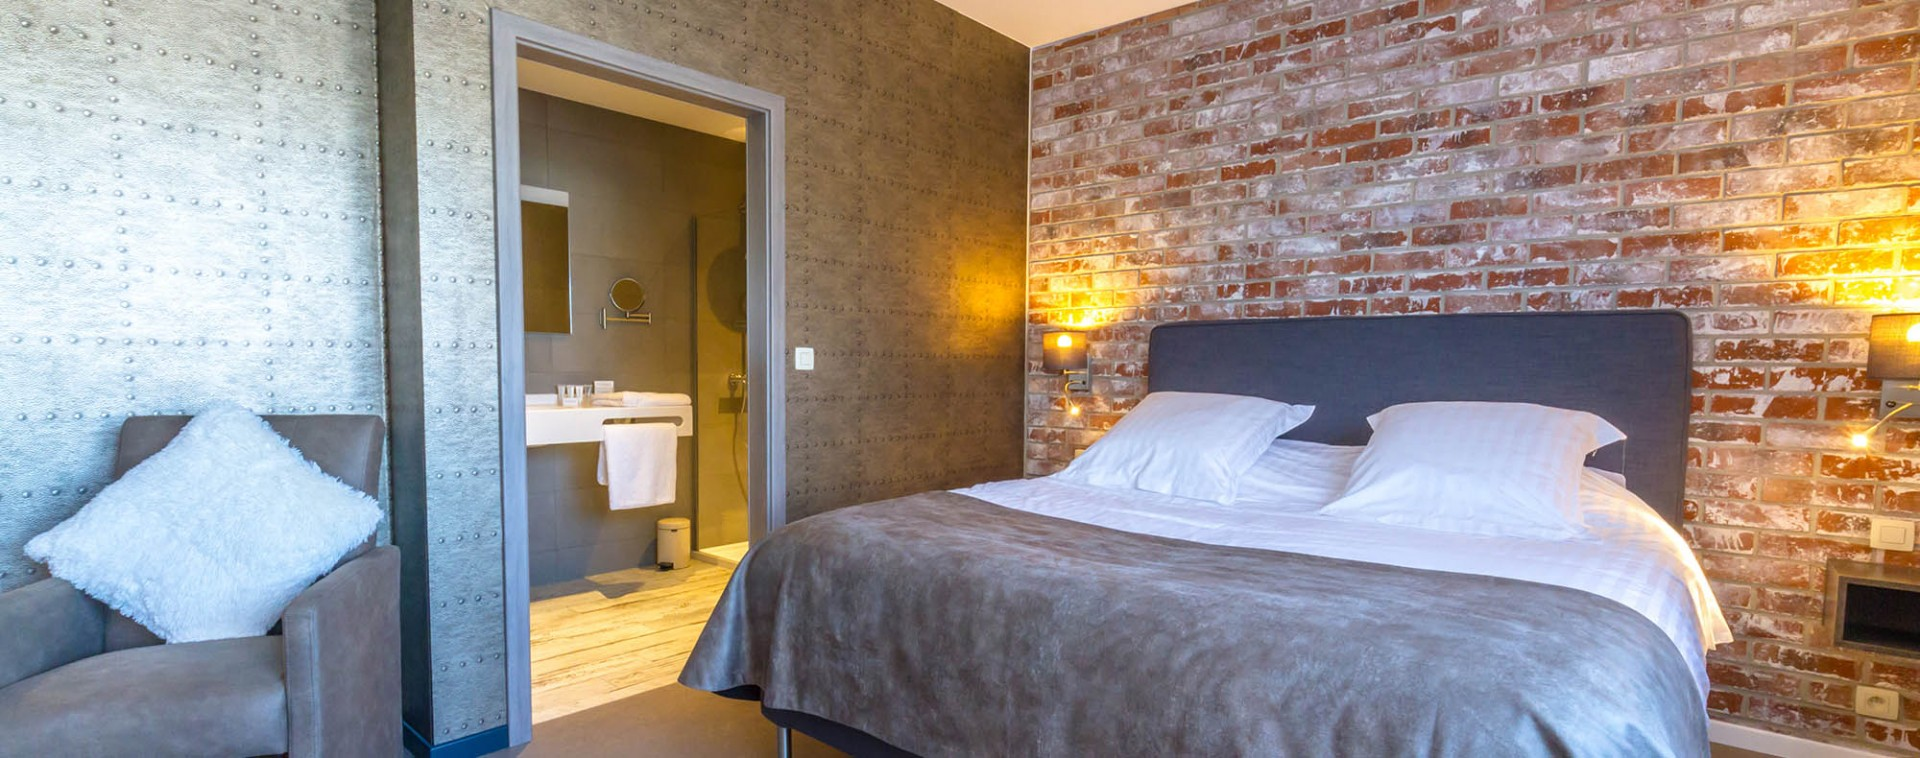 Accommodations in Liège province - Liège-Spa Businessland | © Manava Hôtel